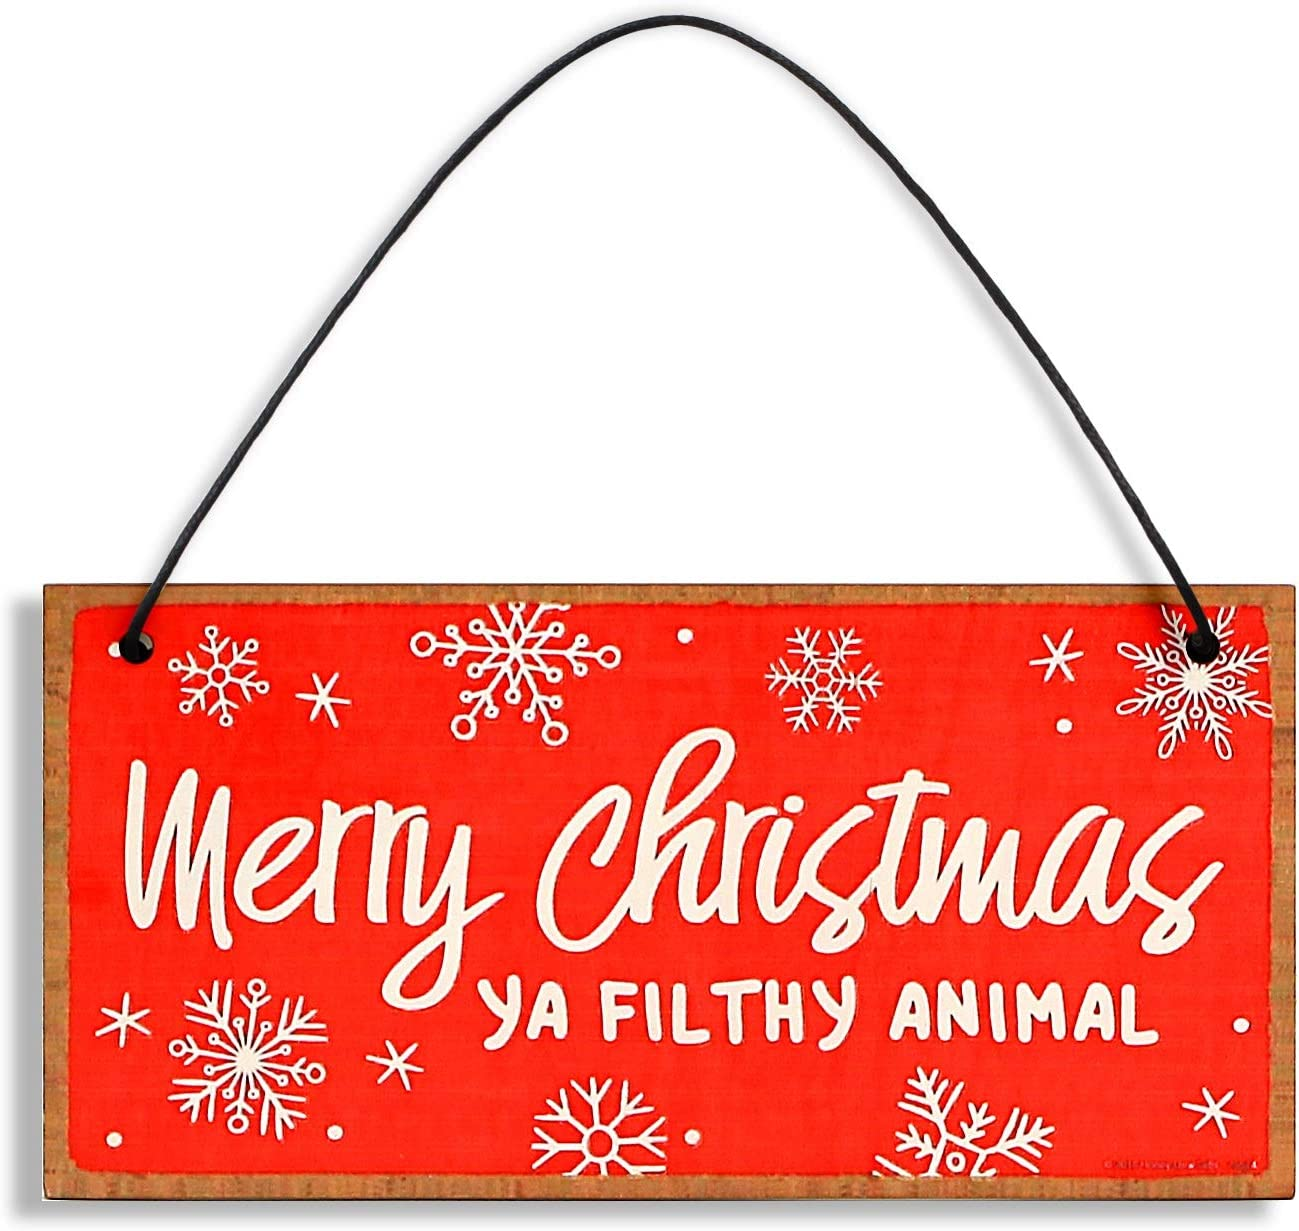 Funny Merry Christmas Wood Plaque 20x10 cm Door Hanging Decor Garden Wall Plaque Xmas Decor